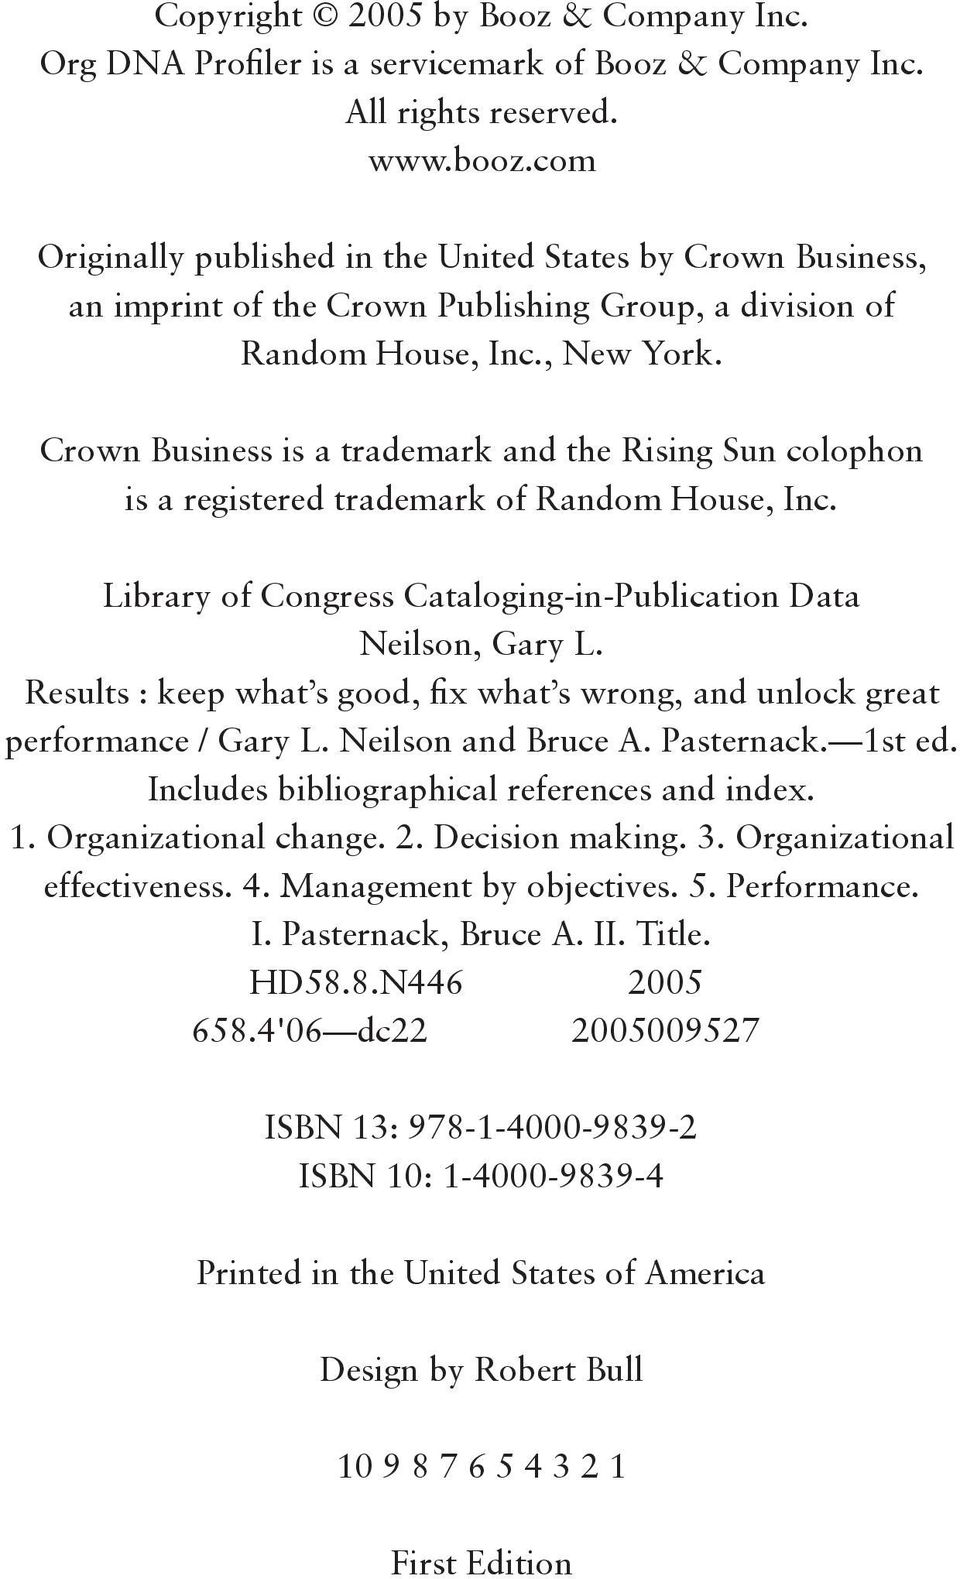 Crown Business is a trademark and the Rising Sun colophon is a registered trademark of Random House, Inc. Library of Congress Cataloging-in-Publication Data Neilson, Gary L.